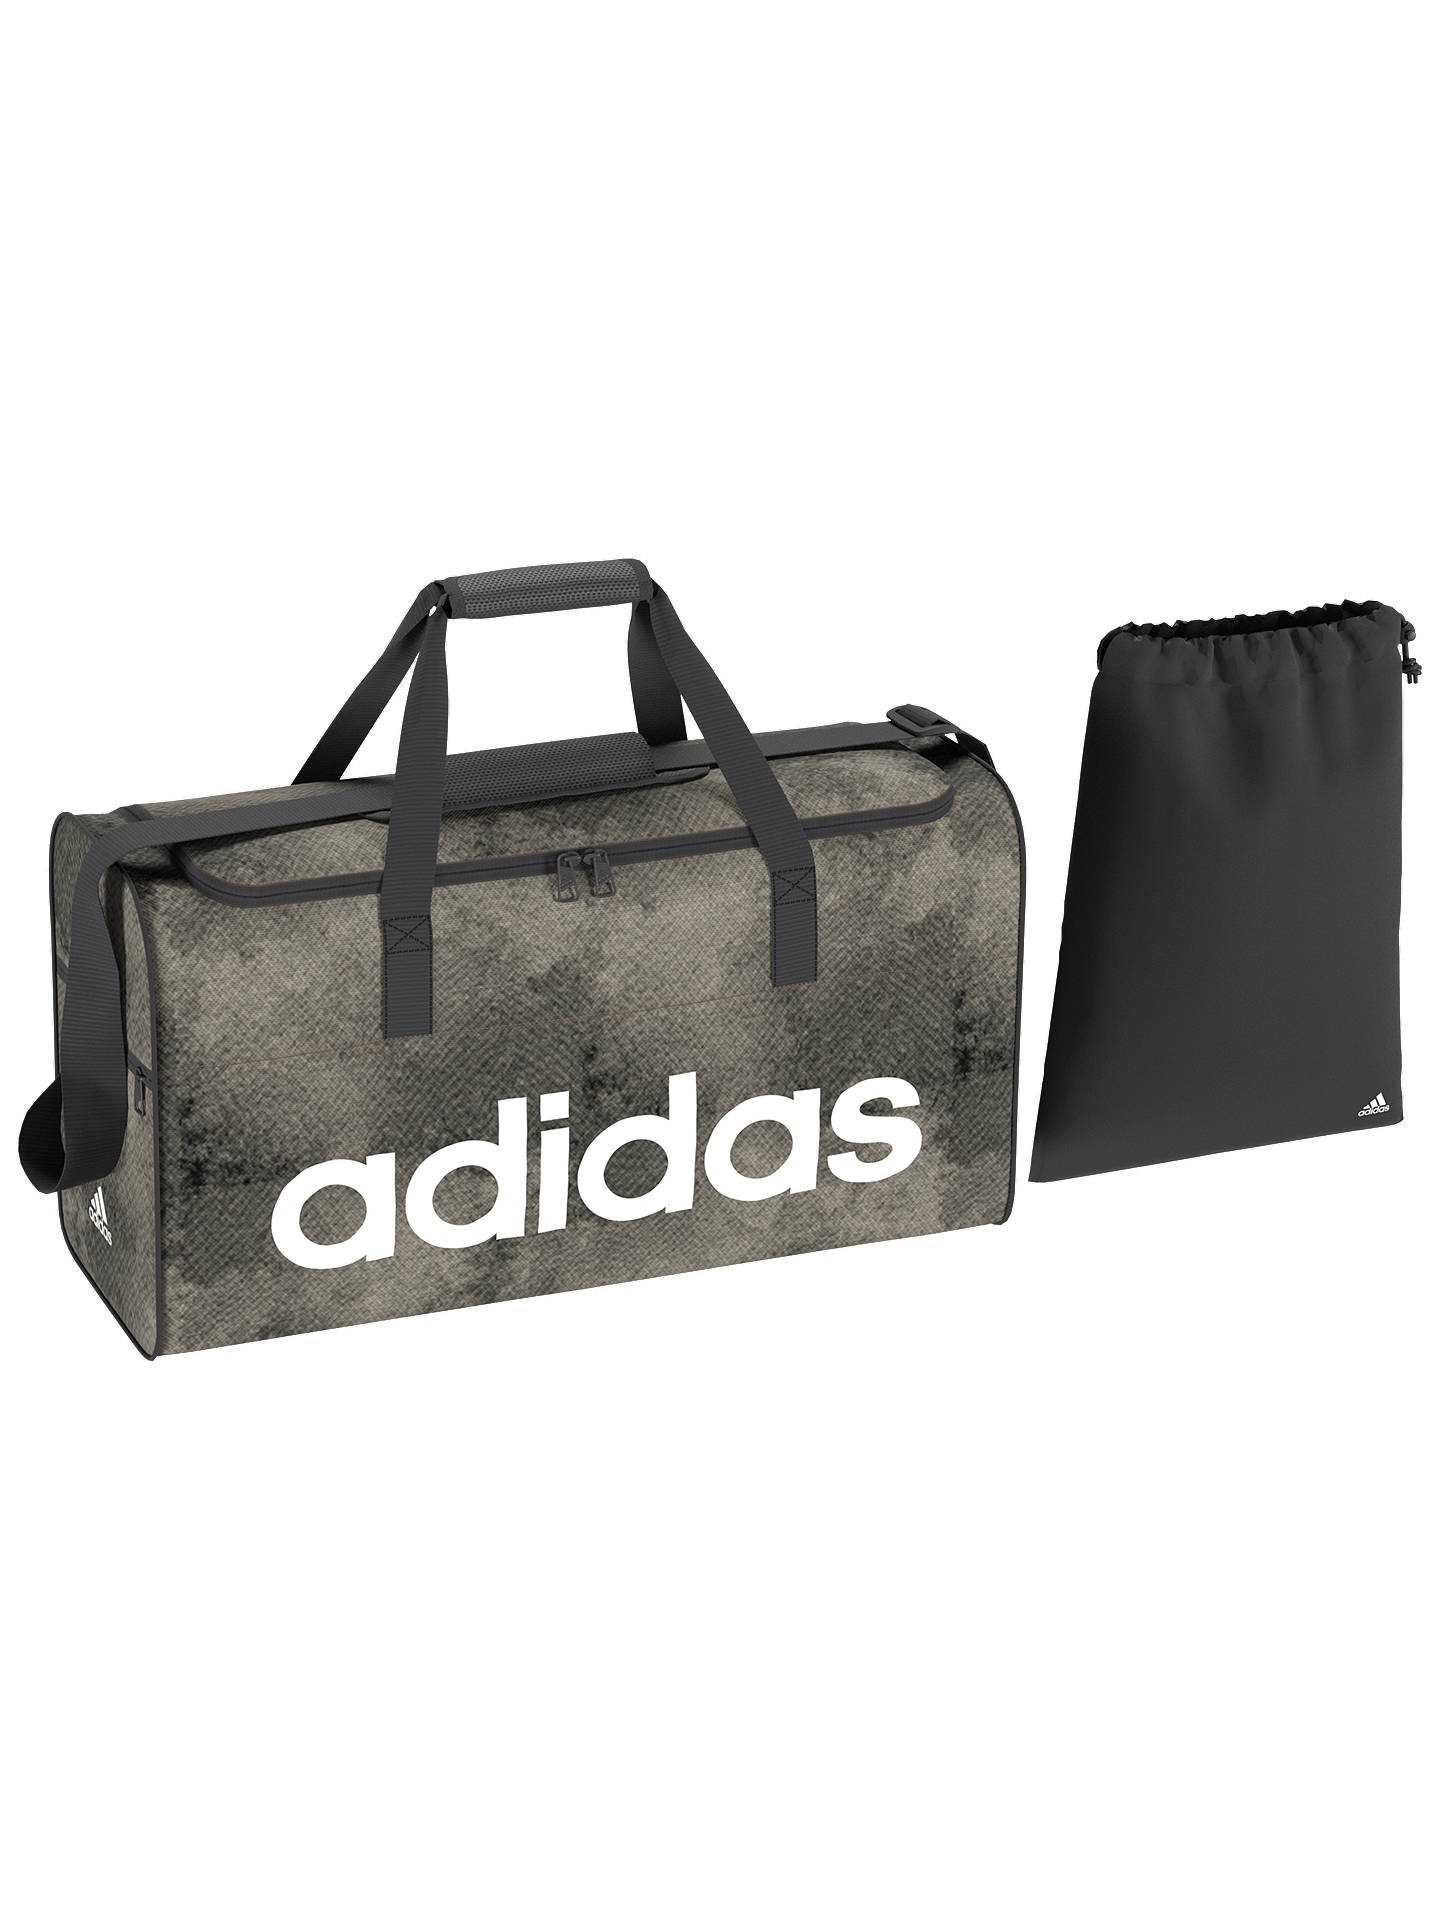 06e49a6358 Buy adidas Linear Performance Duffel Bag